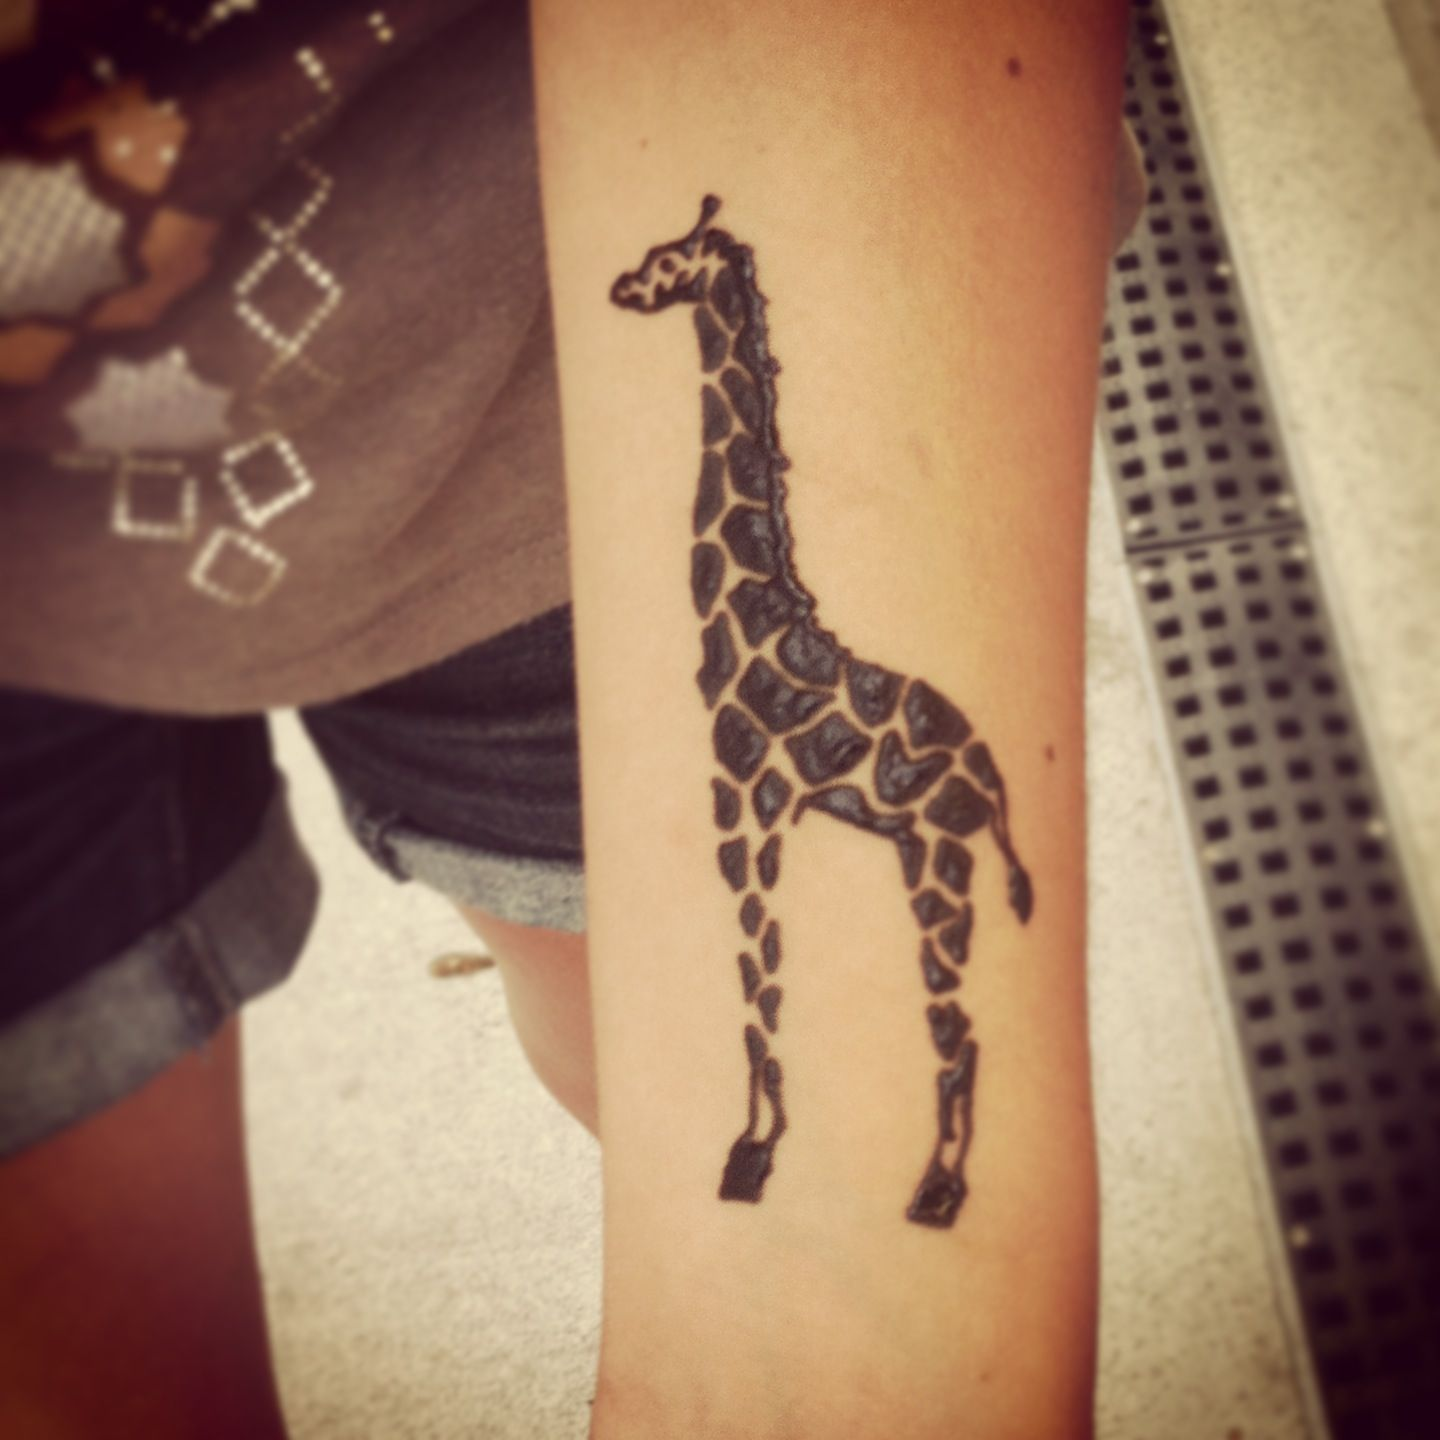 Simple Henna Tattoo Henna Tattoo: My Giraffe Henna Tattoo On Wrist...I Love It! #tattoo